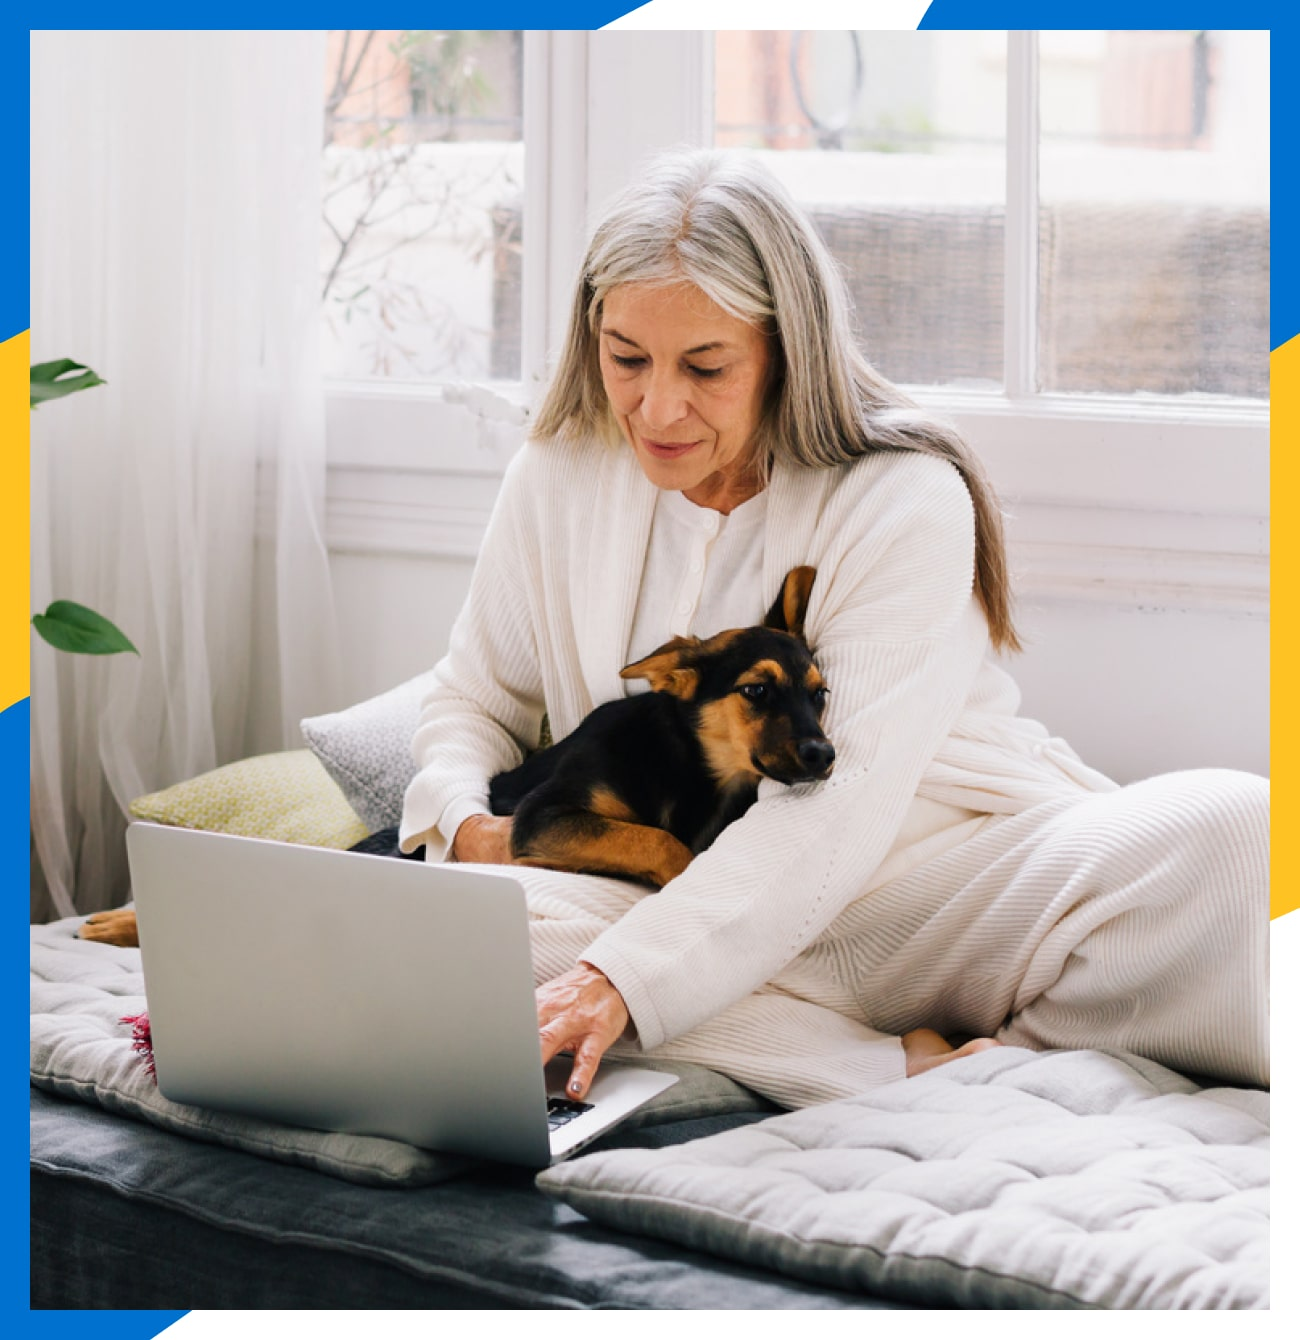 Older woman holds her German Shepherd puppy while working on her laptop